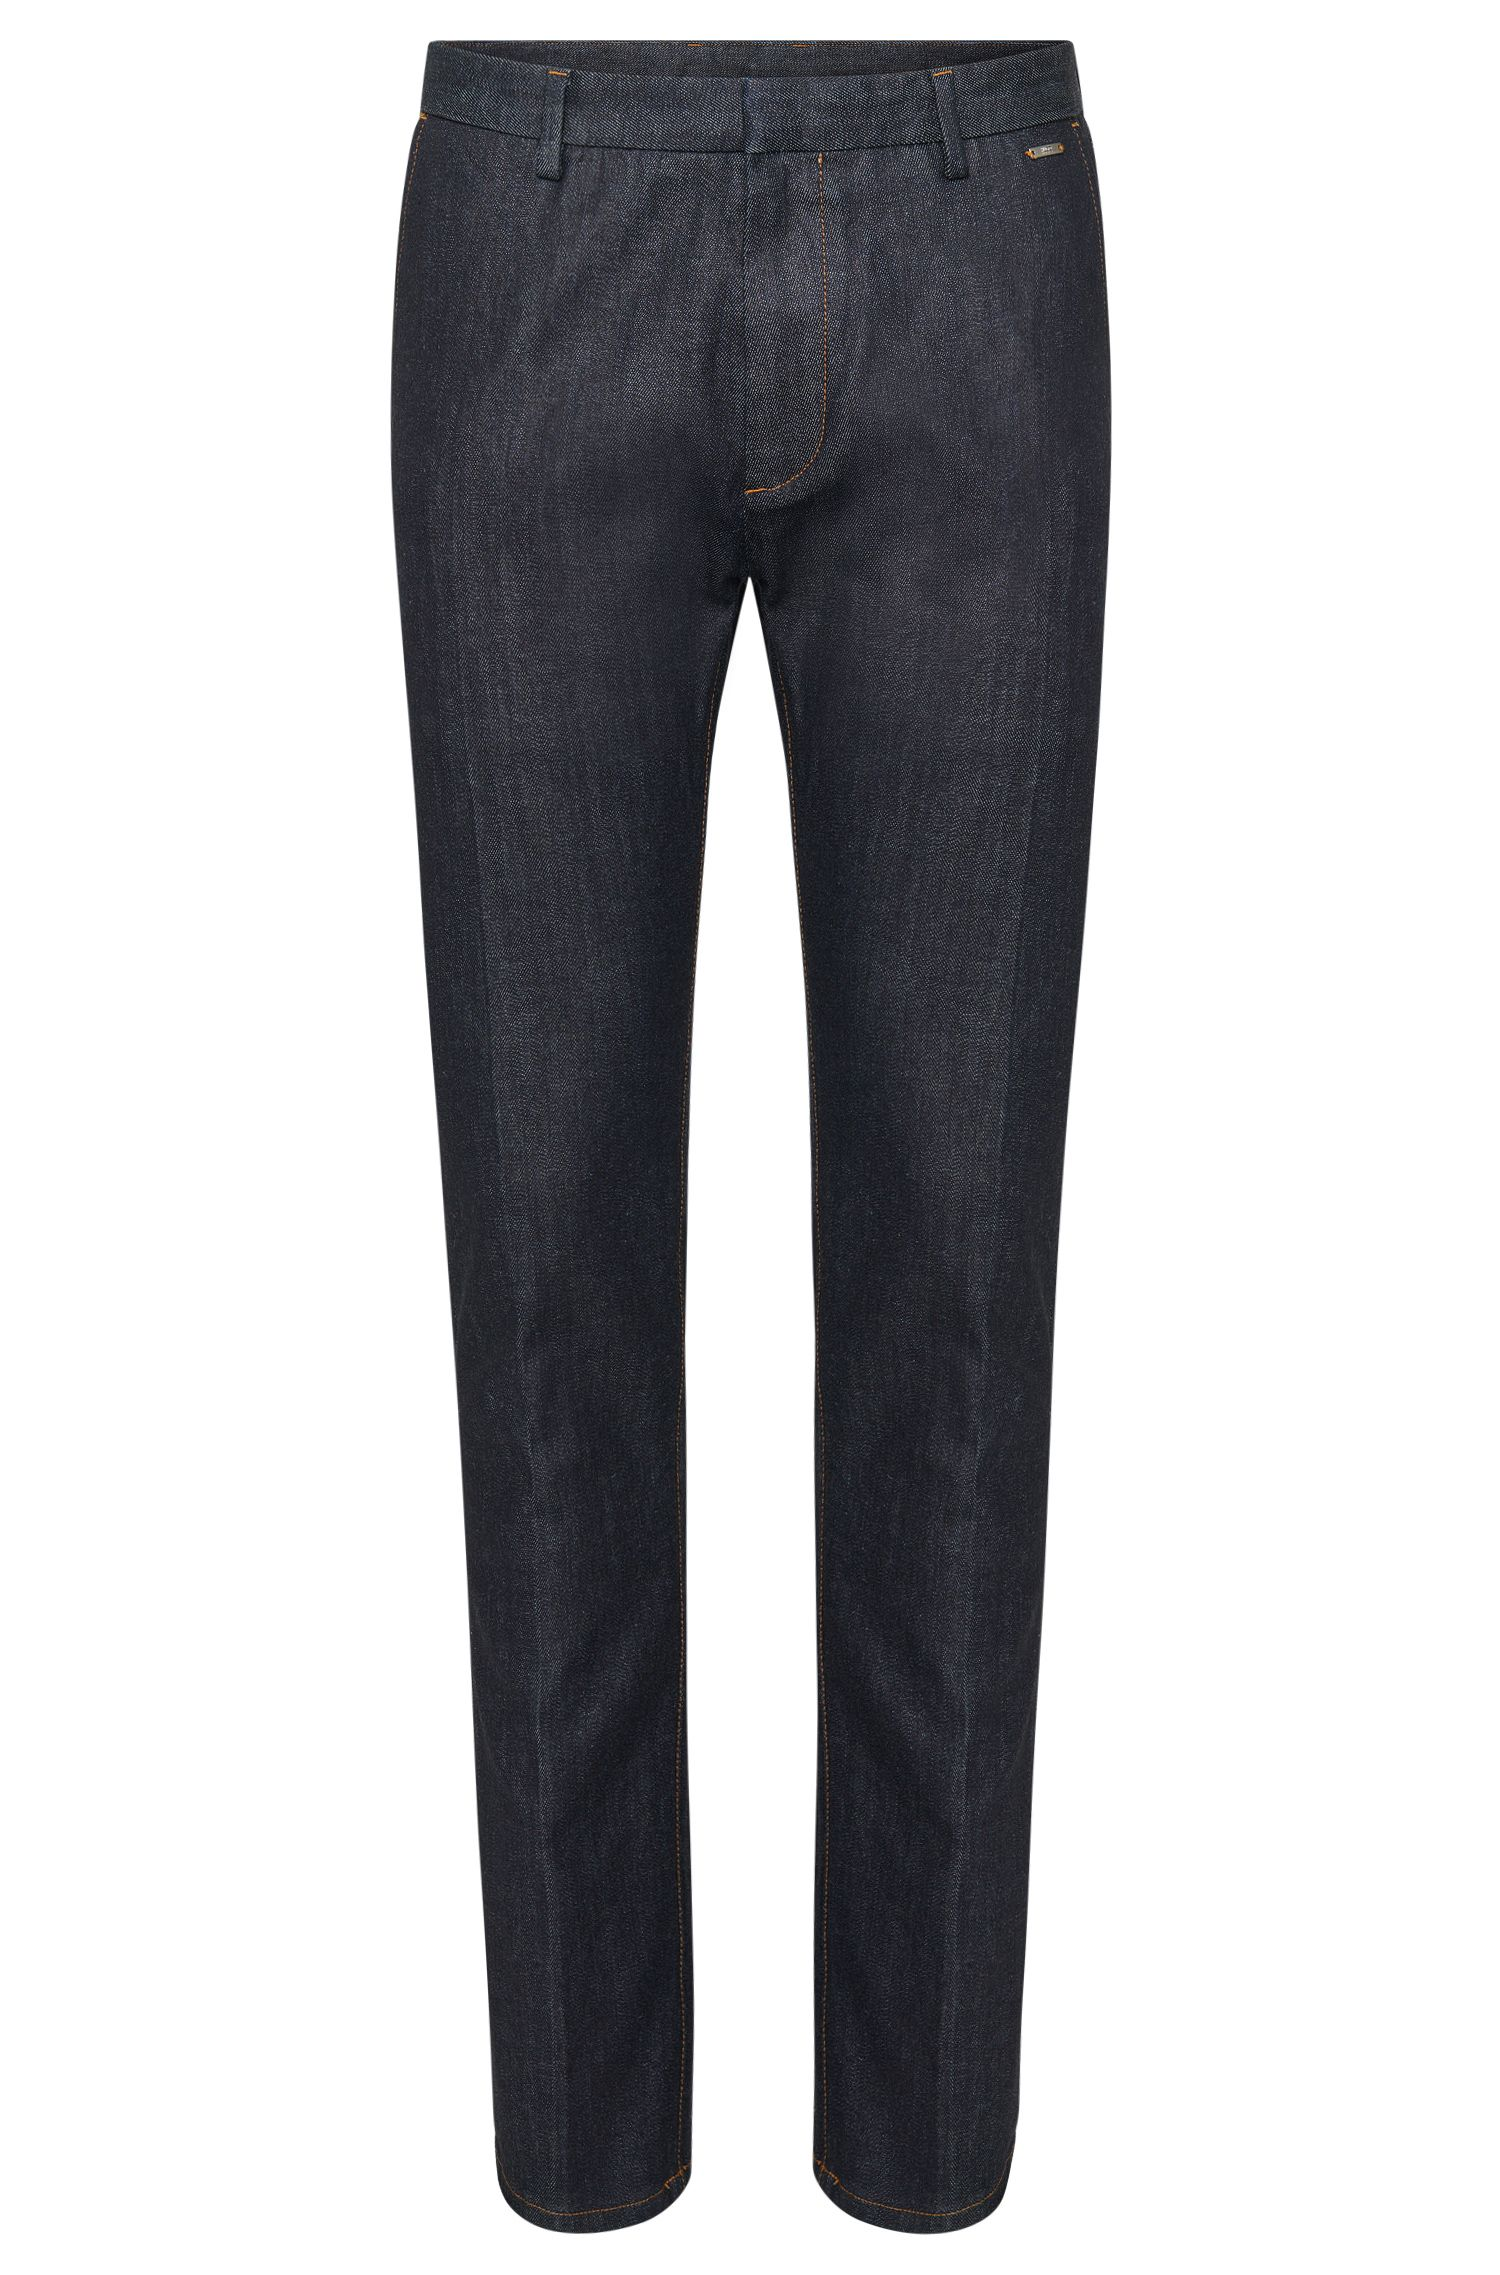 Tapered-fit jeans in cotton blend in chino style: 'Helgo1-W'